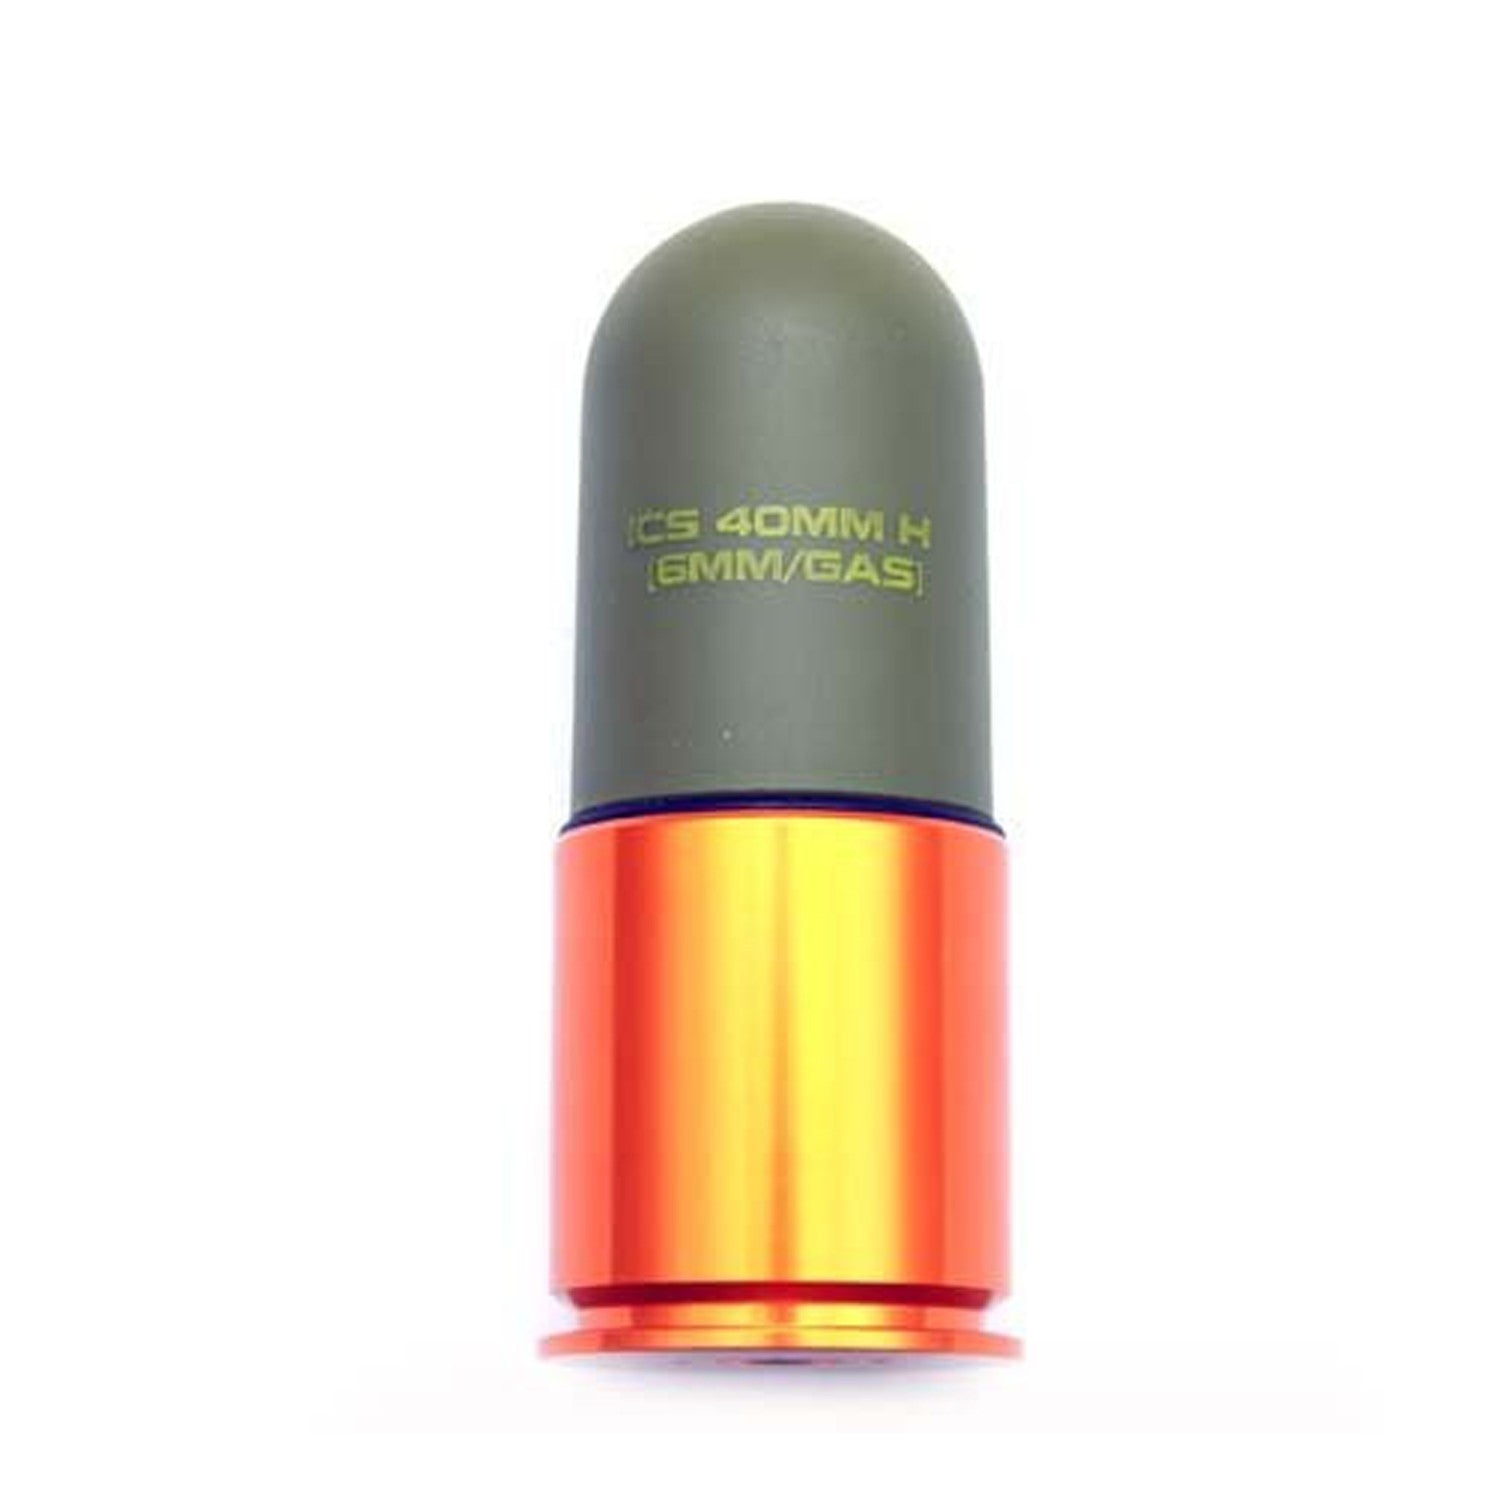 ICS Dual Function Airsoft 40mm Grenade